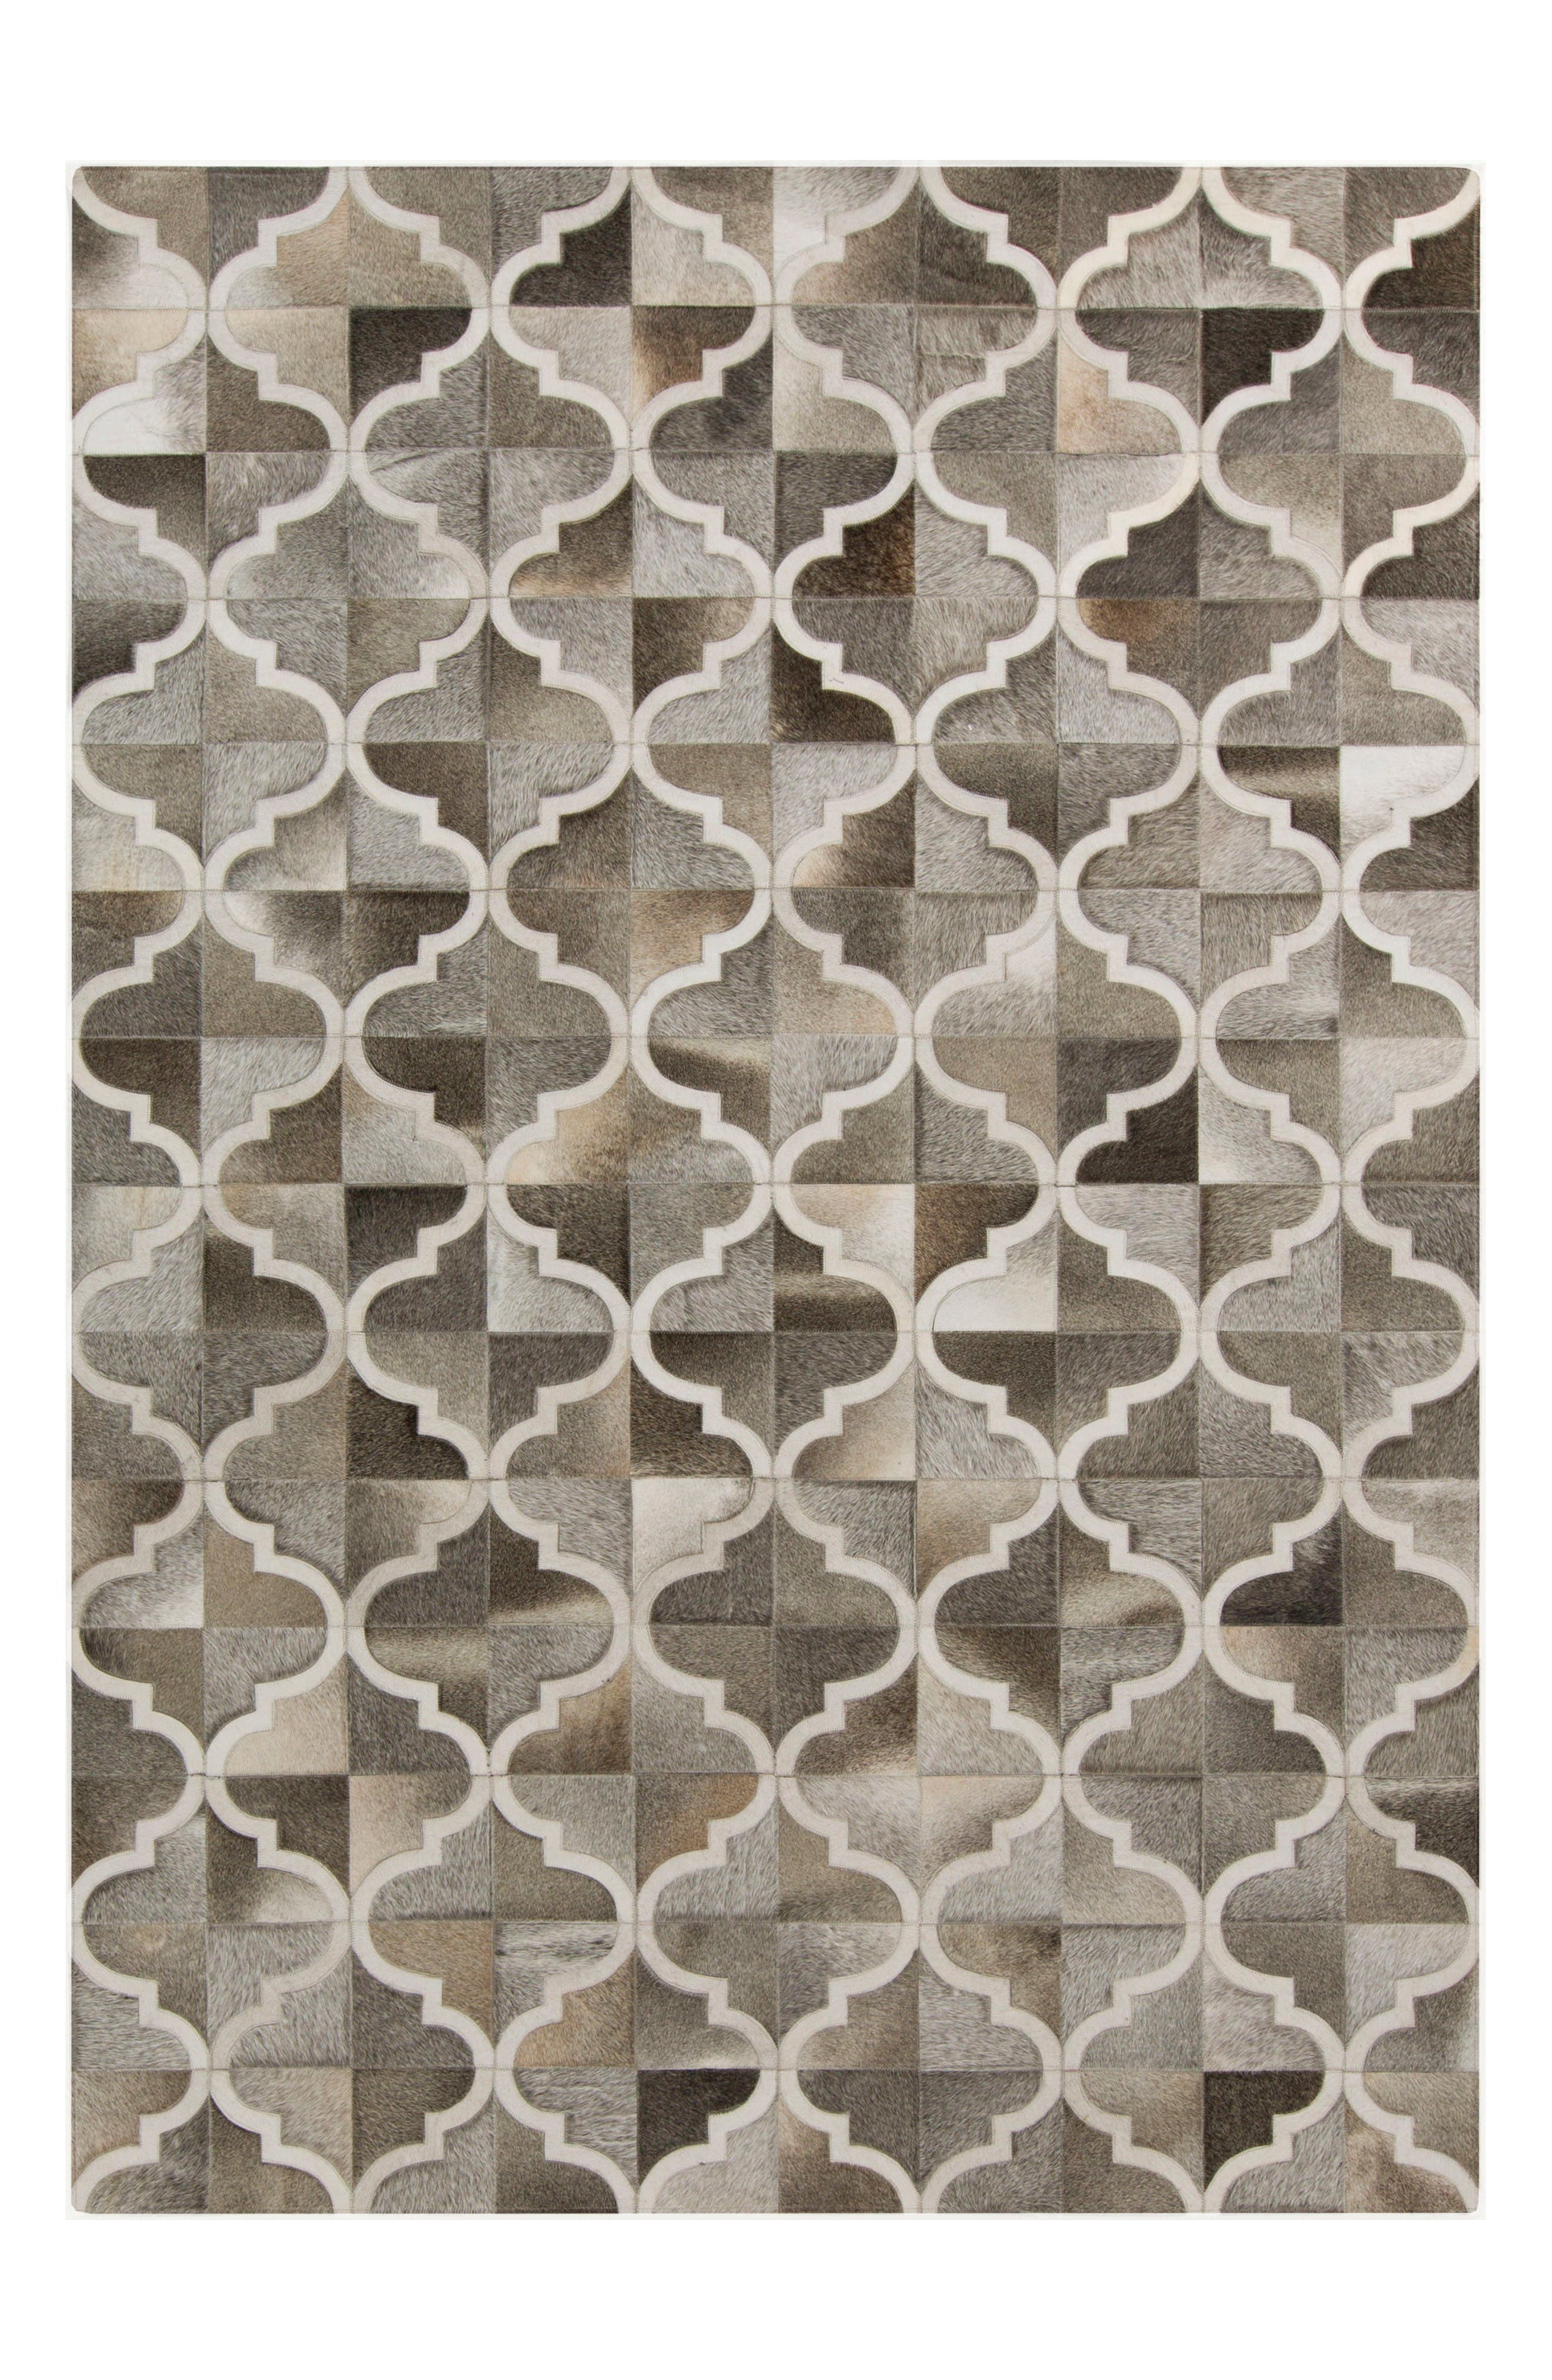 Alternate Image 1 Selected - Surya Home Outback Diamond Hand Stitched Calf Hair Rug